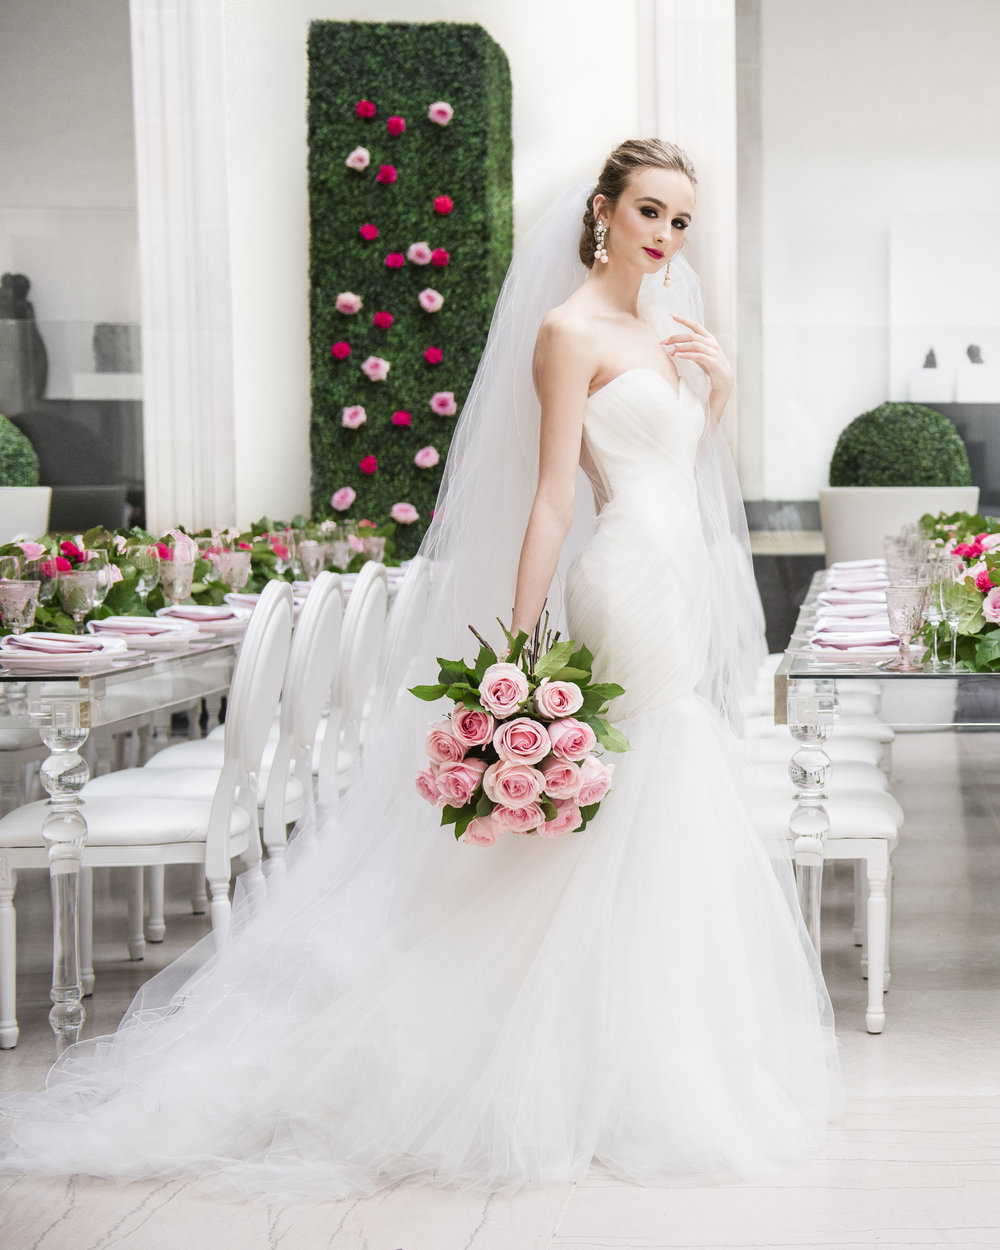 Bride in garden reception - Dior Darling (Wedluxe)